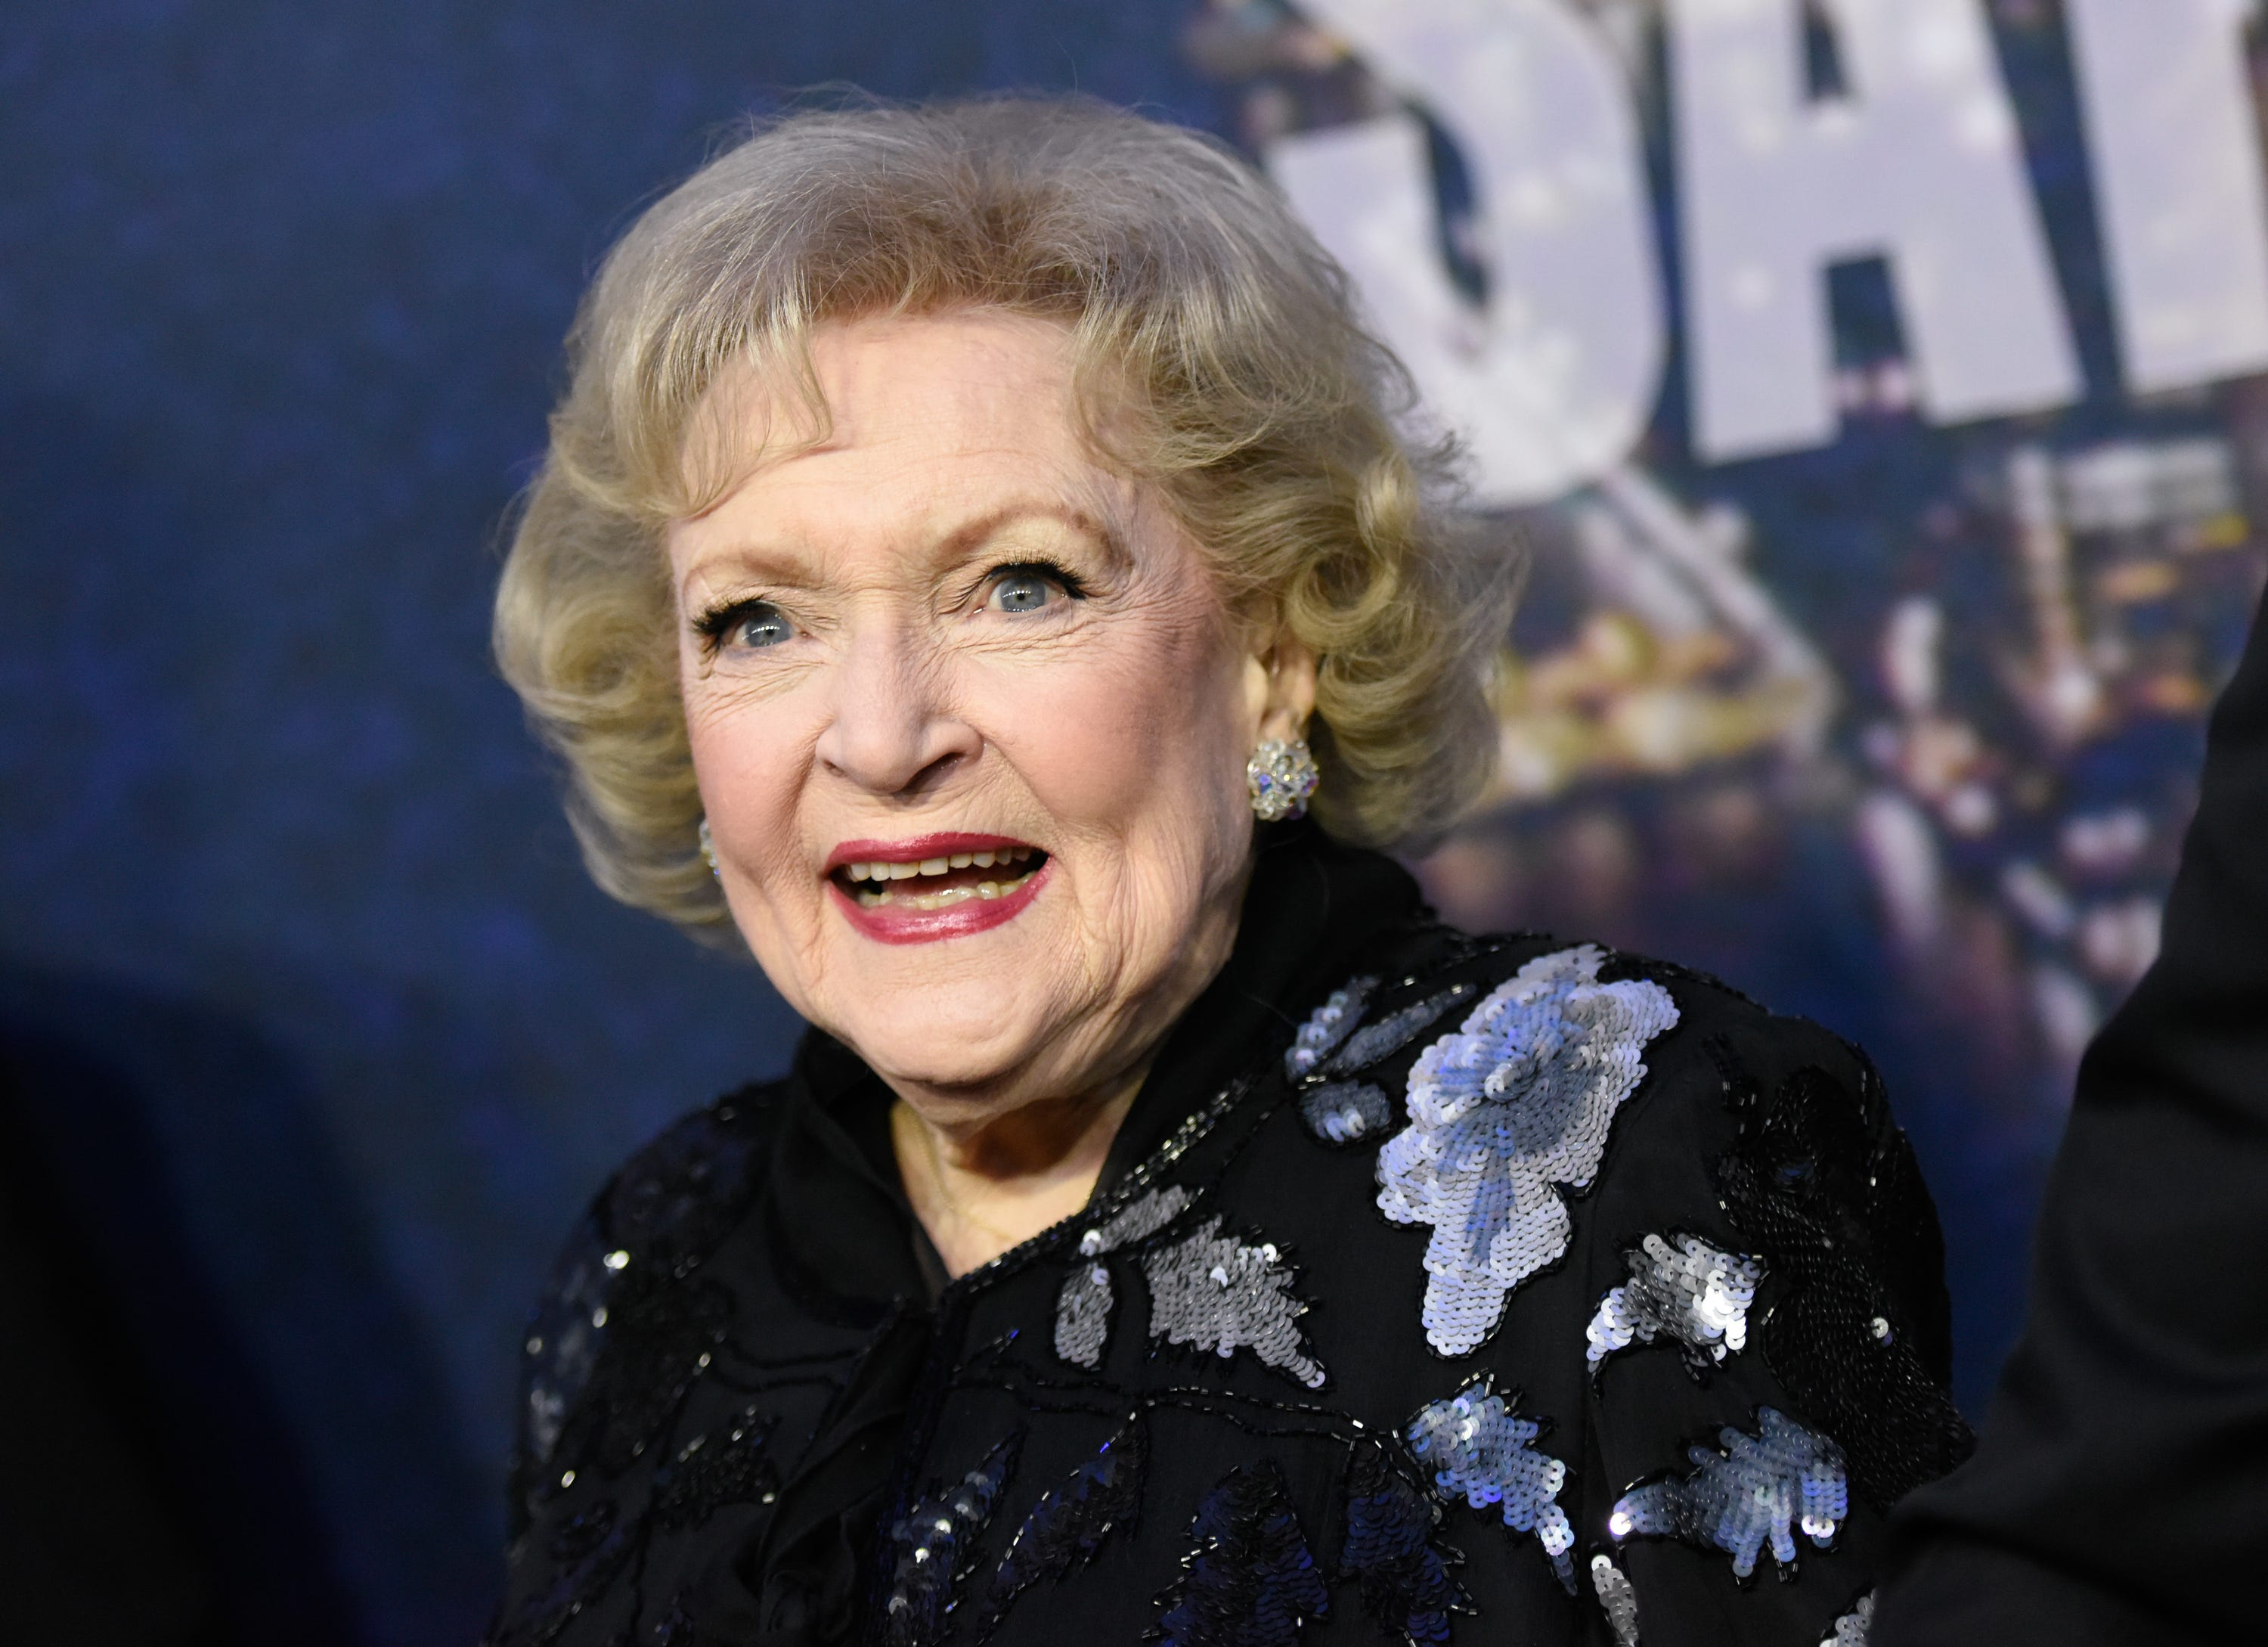 Betty White's life and career in photos